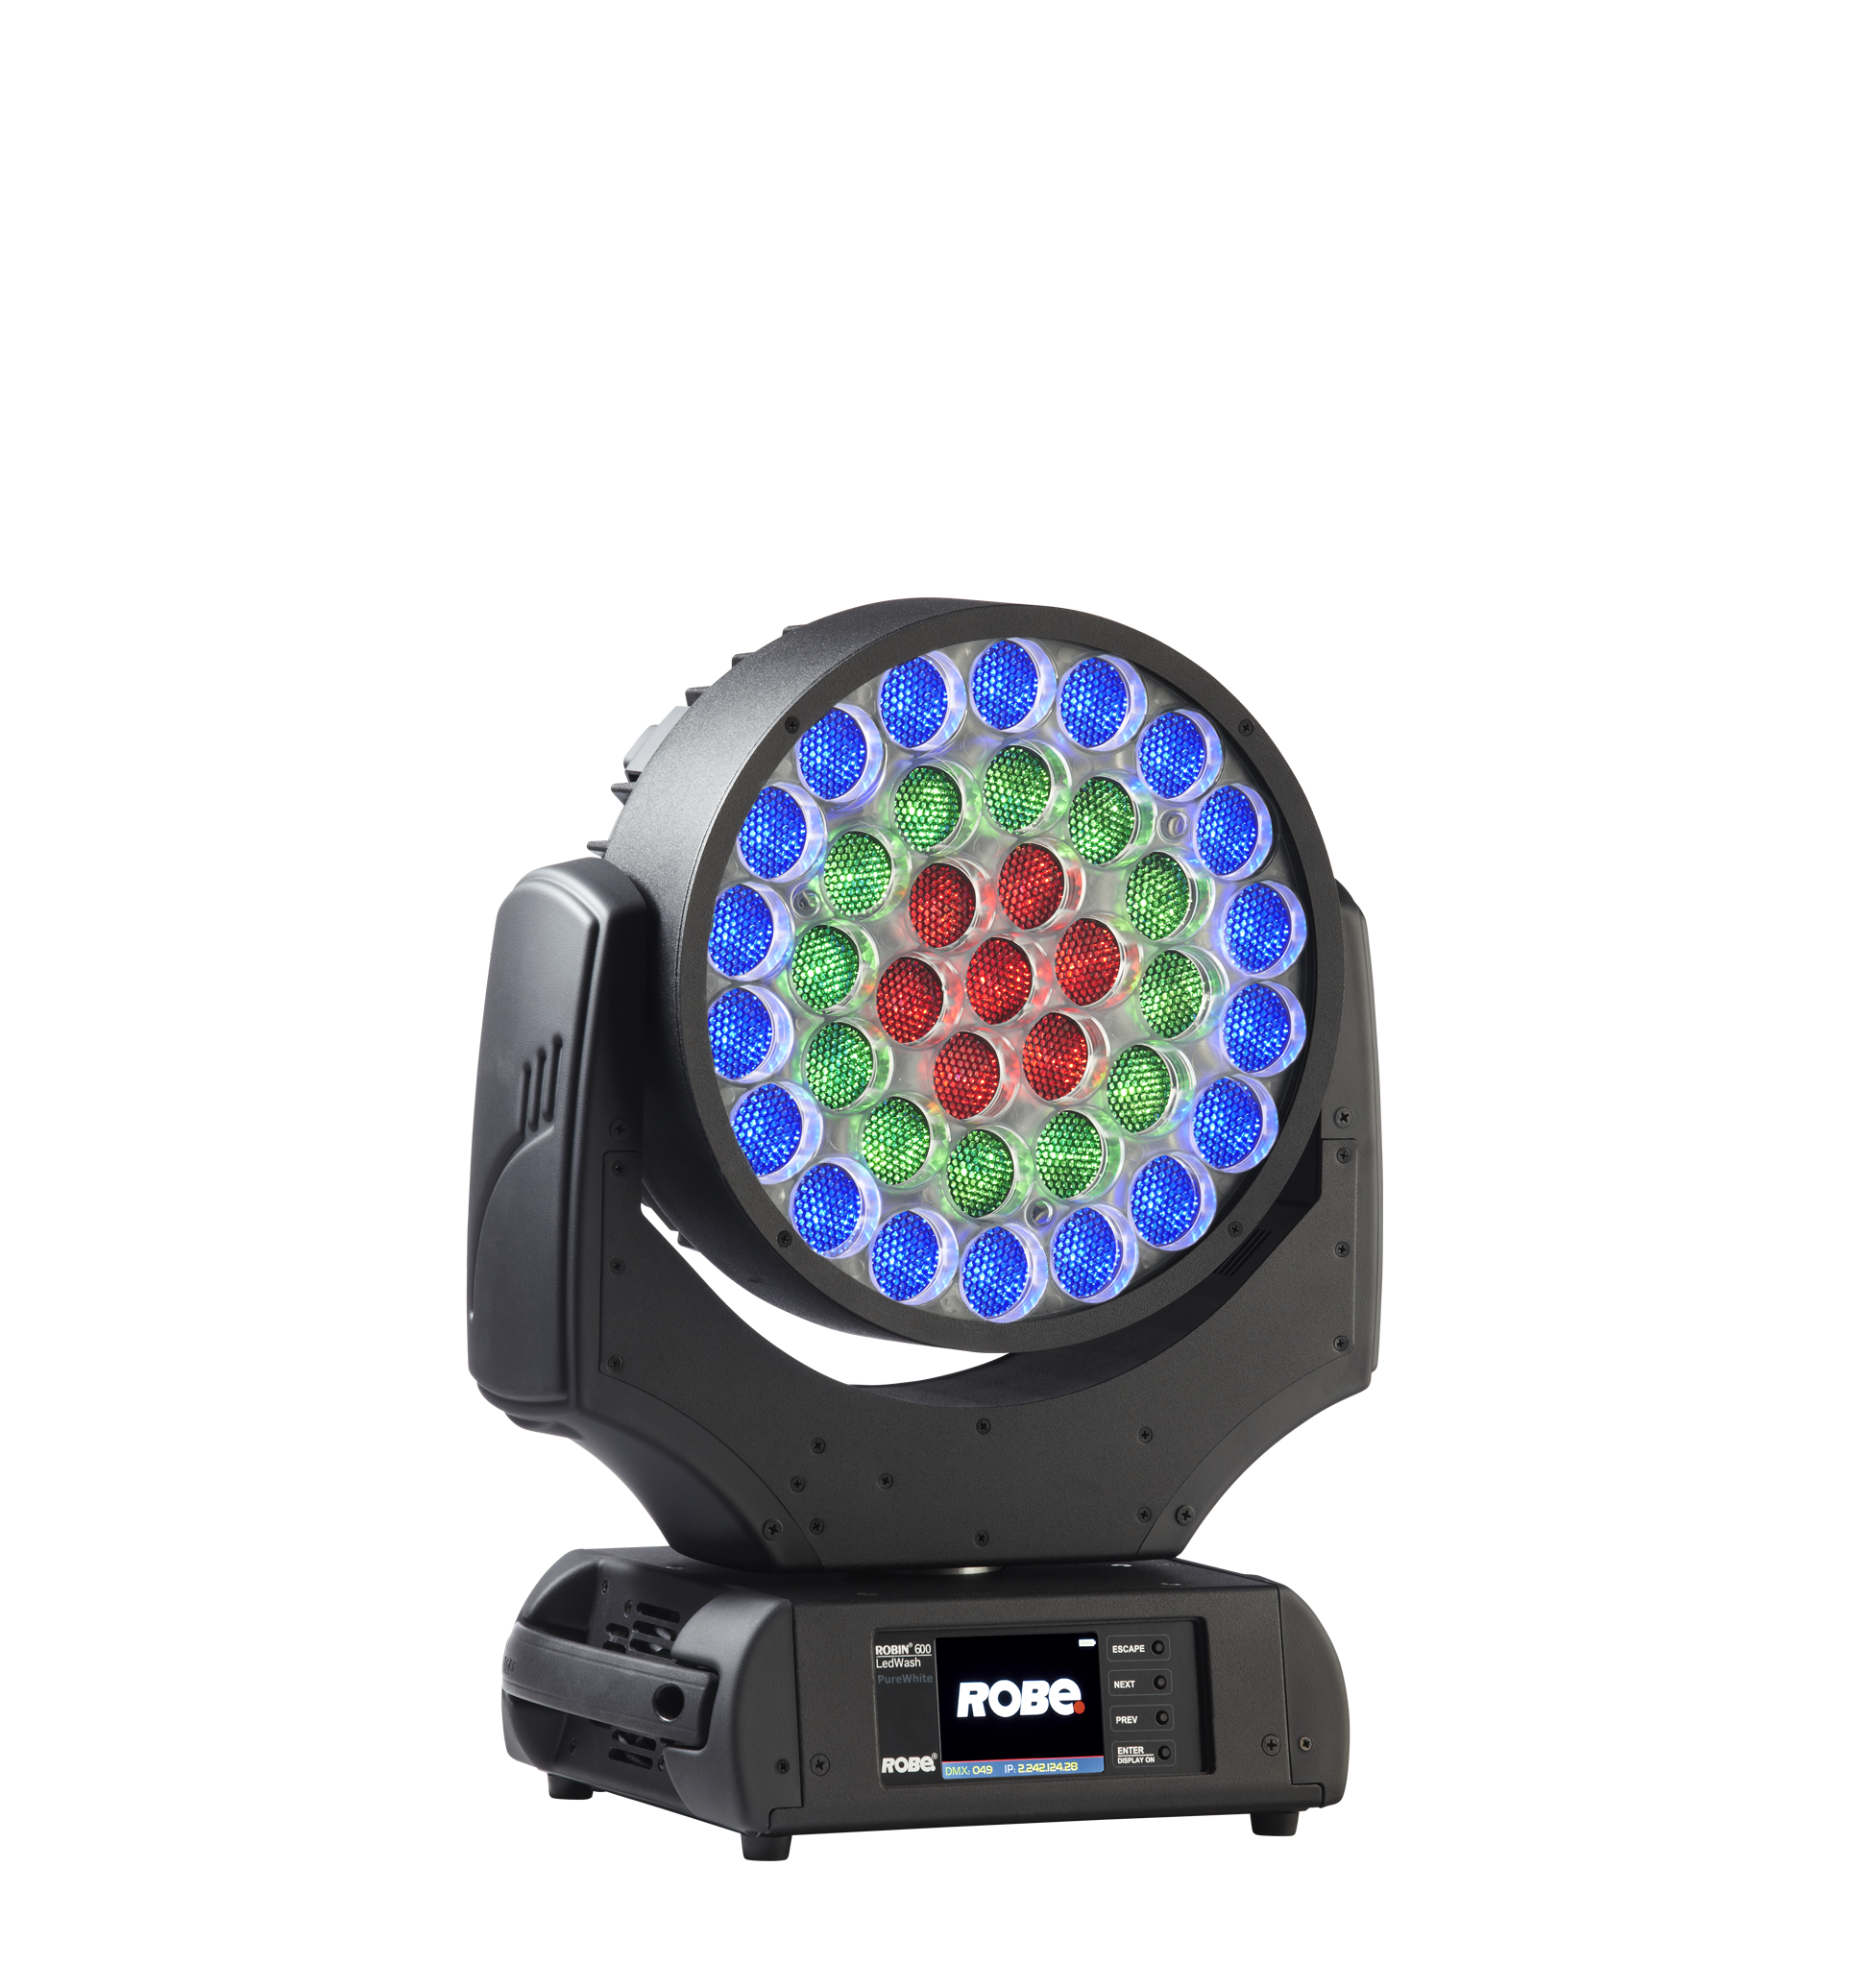 Robe Robin 600 LED Wash dry hire